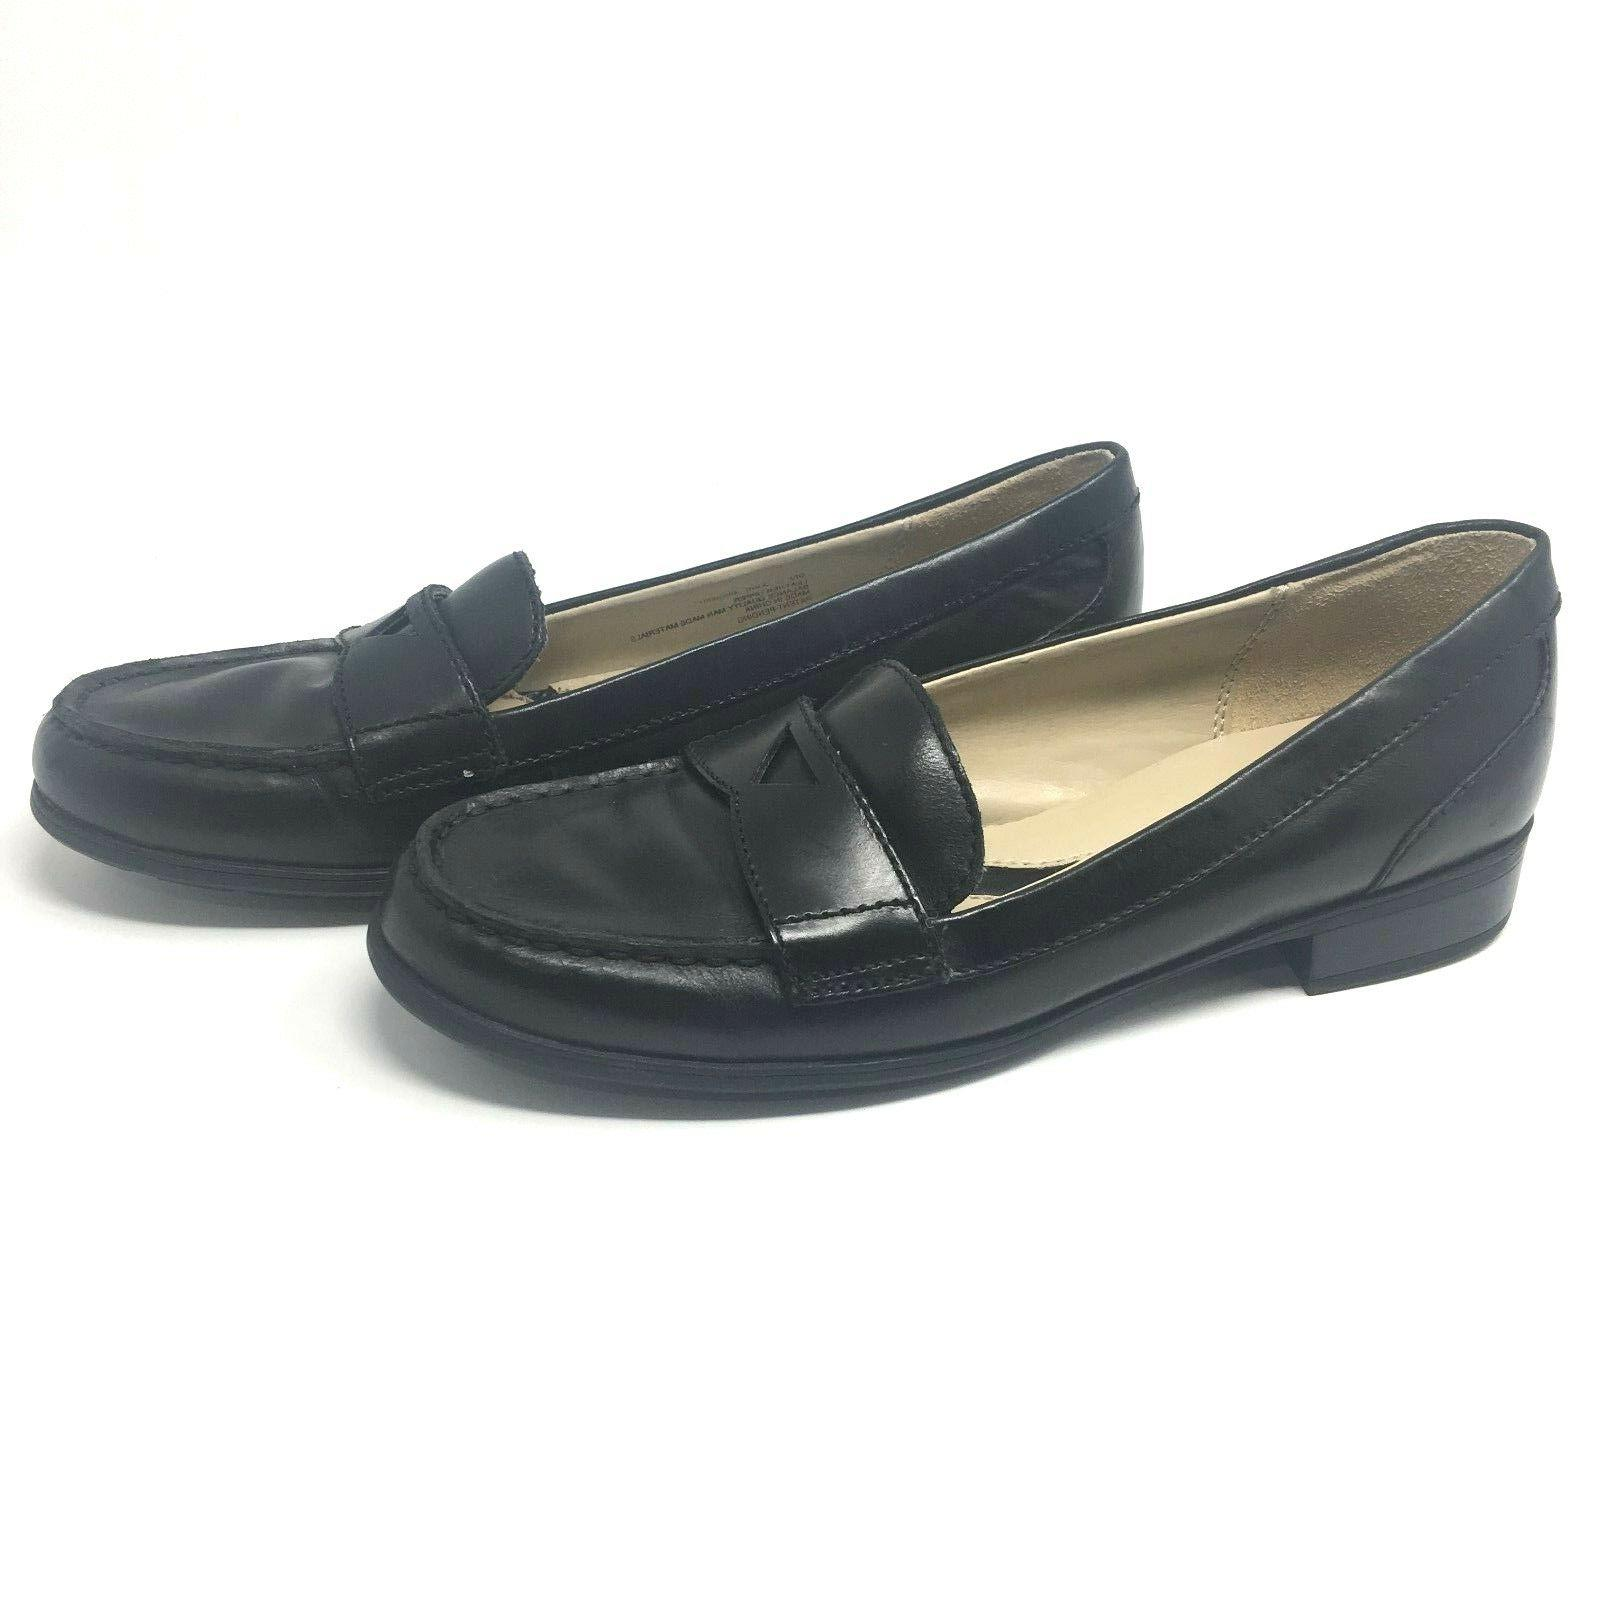 Naturalizer Black June Size 9N 49520001